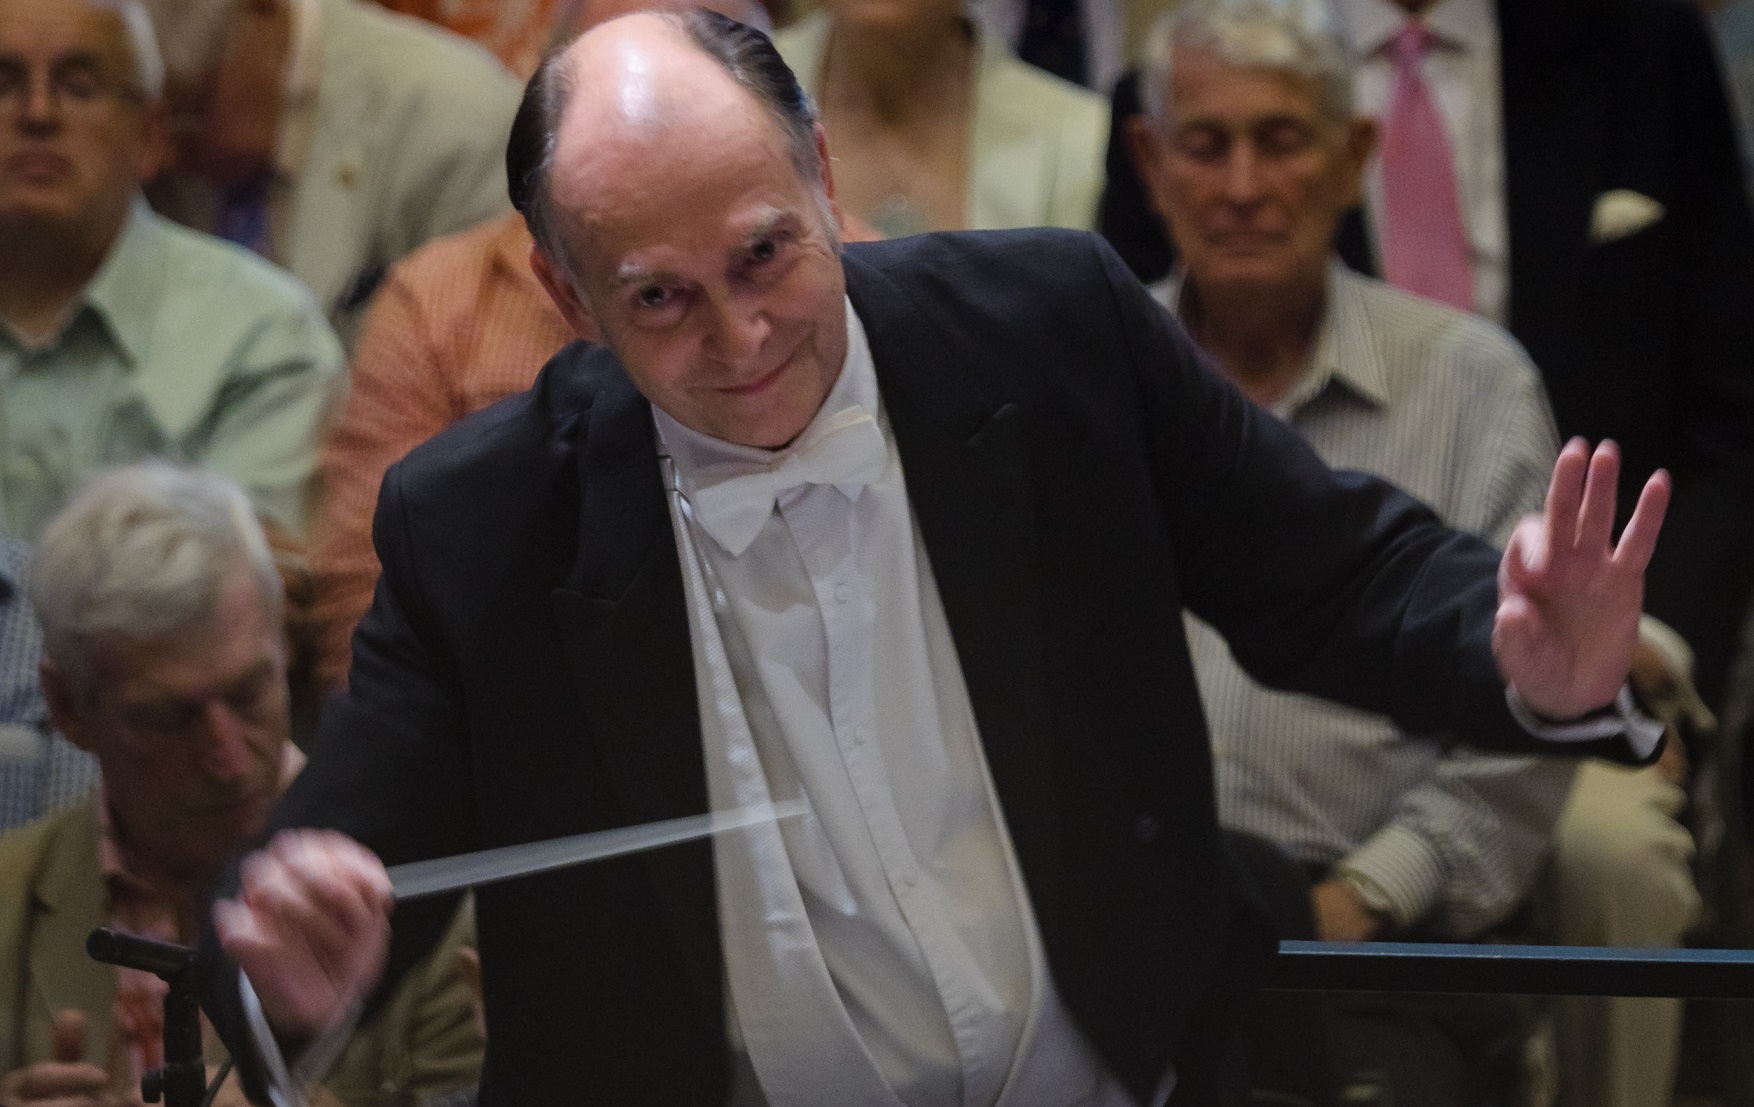 The Royal Philharmonic Orchestra will be conducted by Adrian Partington.